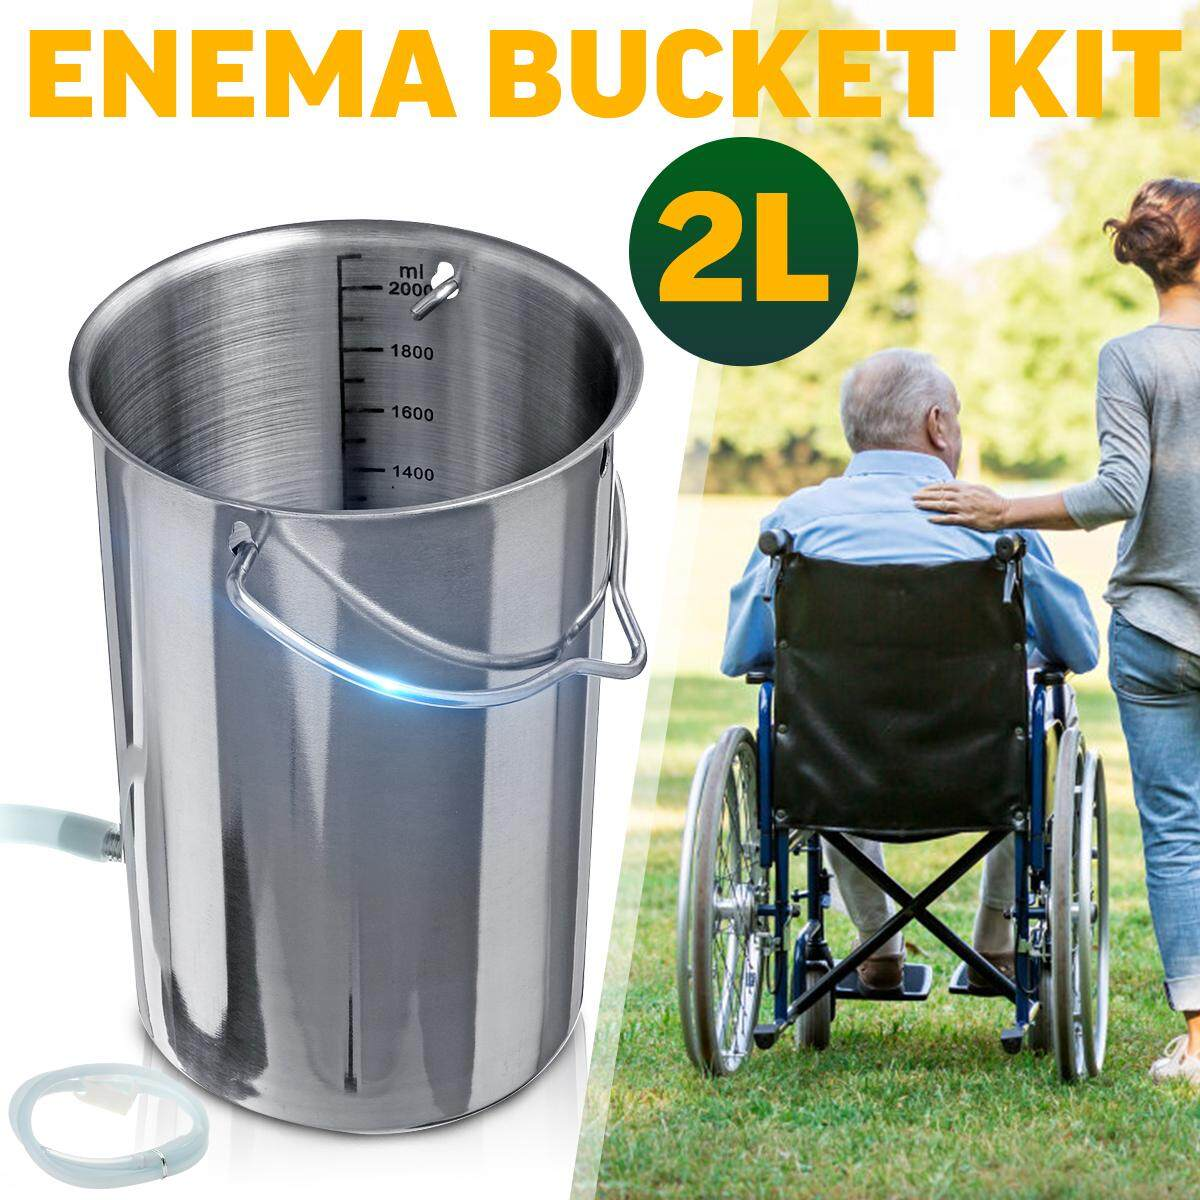 2L Stainless Steel Reusable Enema Colonic Irrigation Bucket Detox Barrel Douche